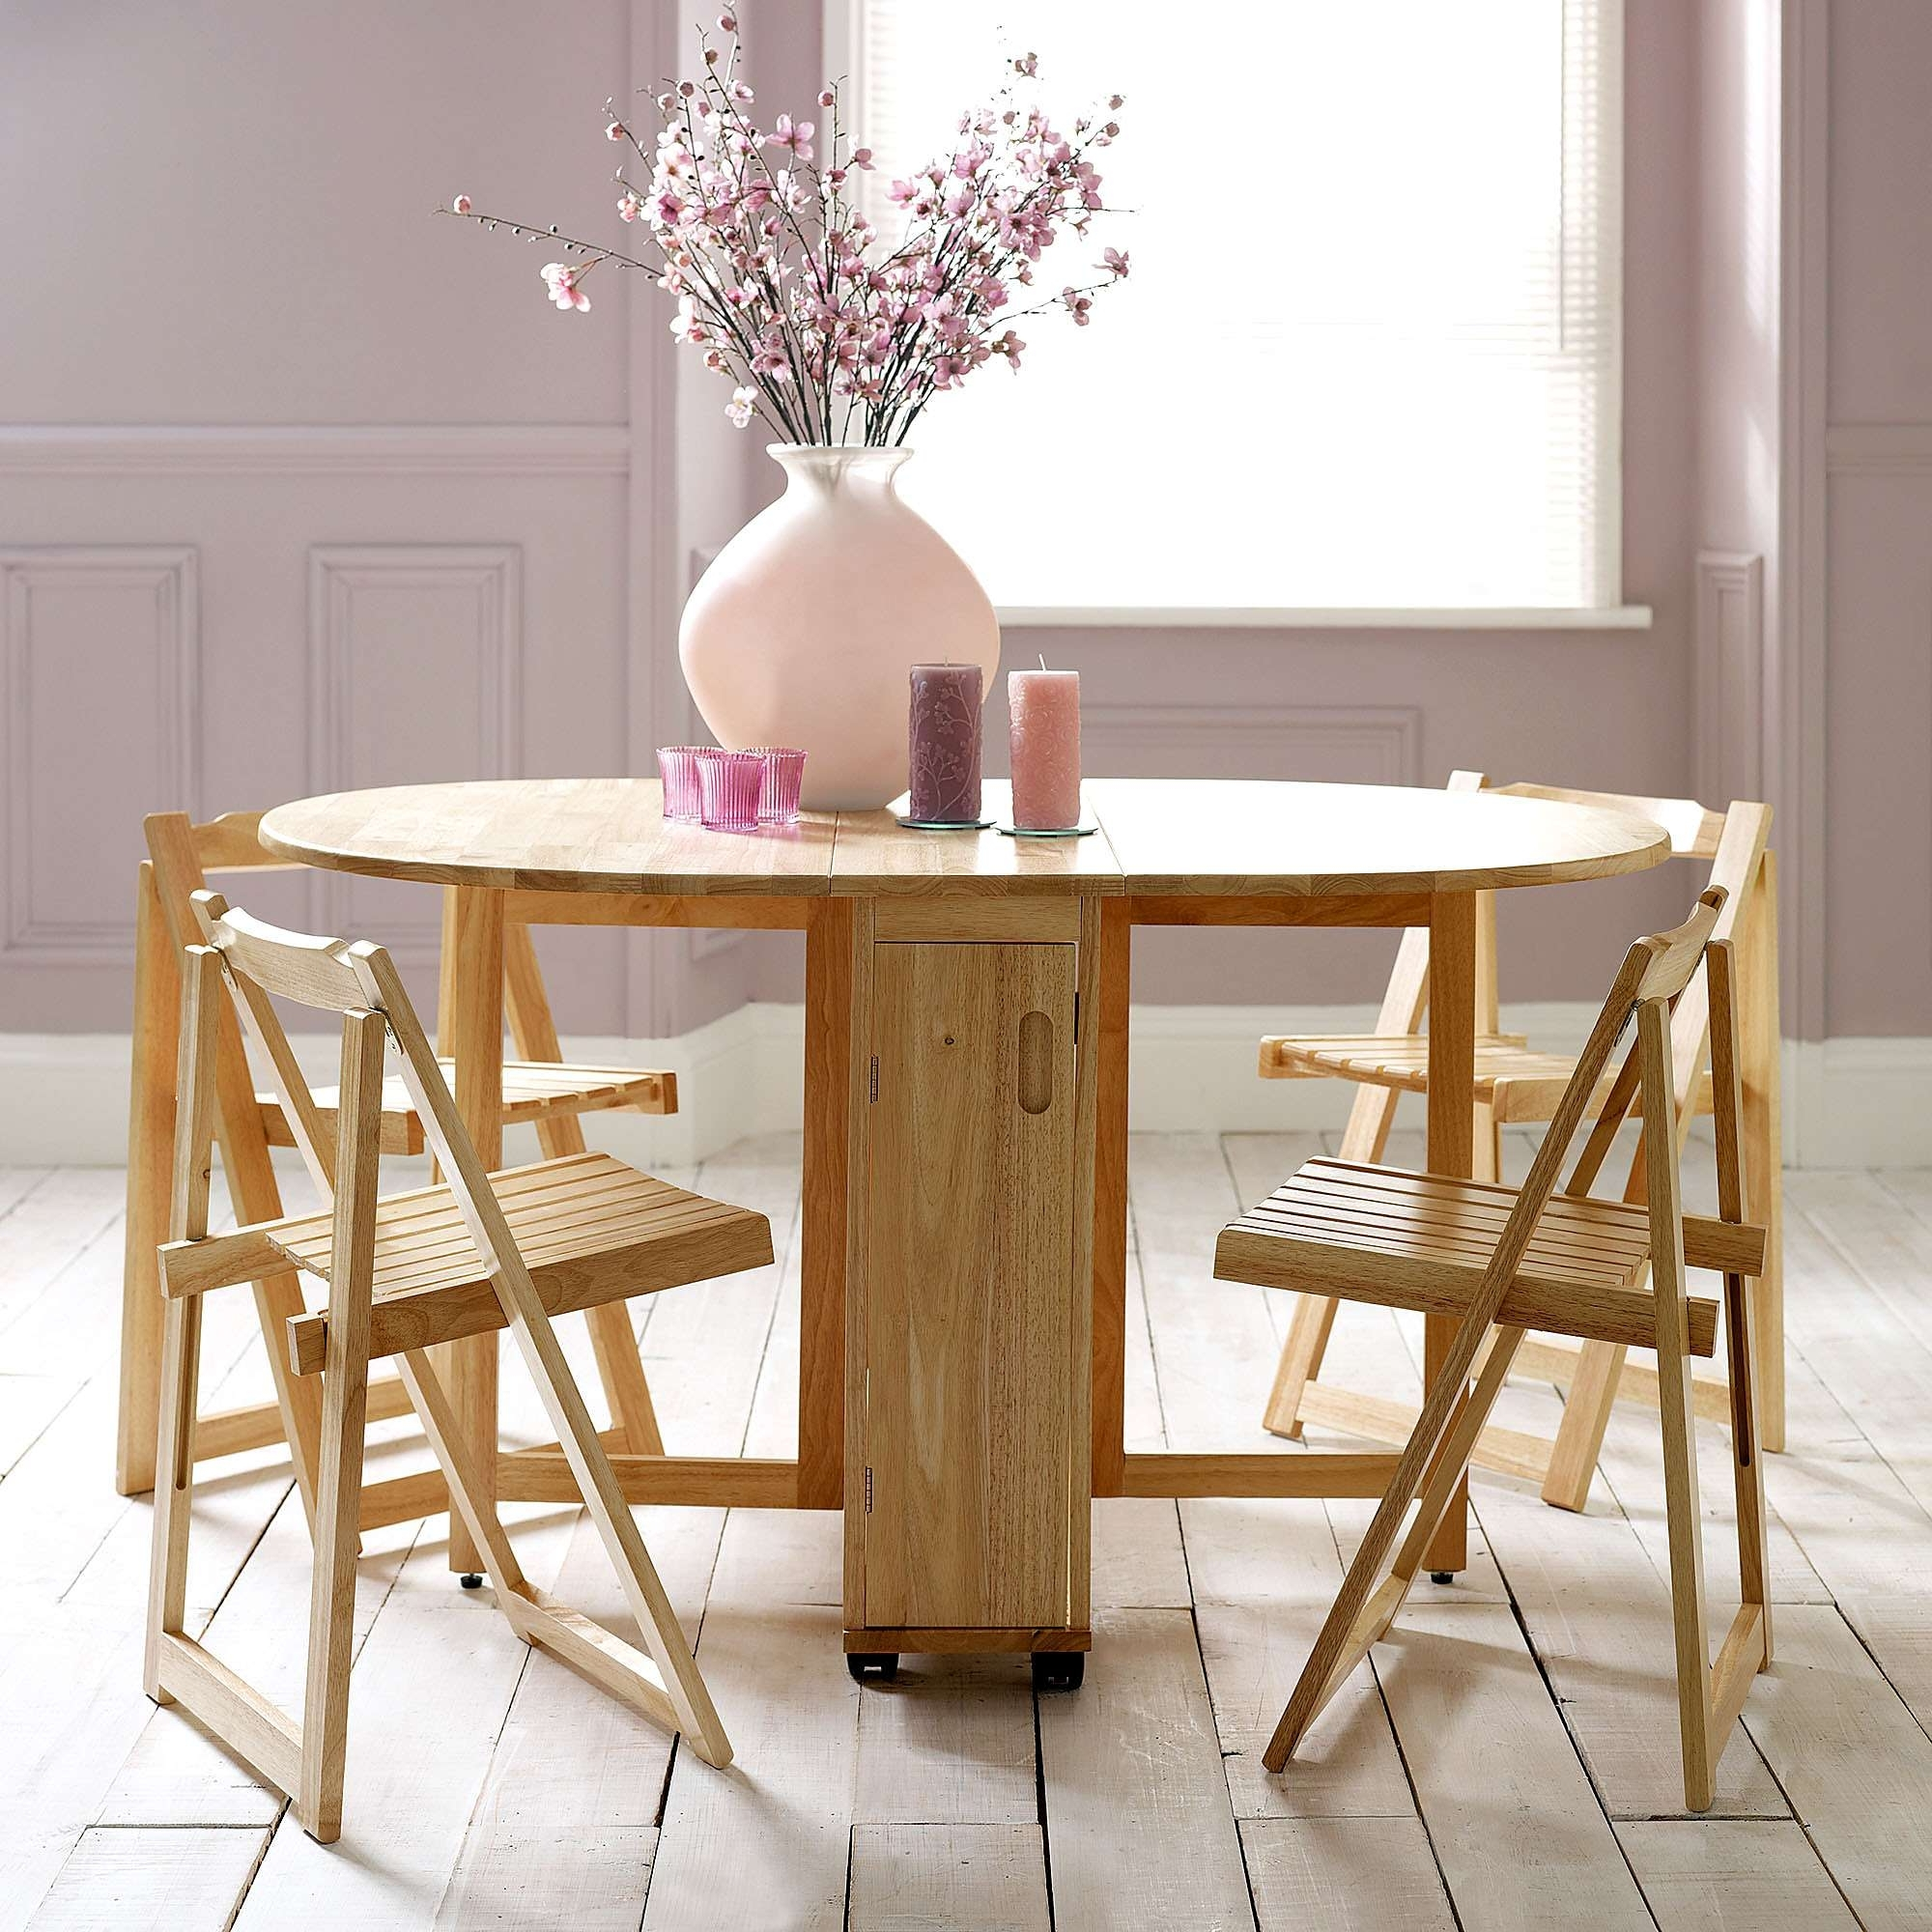 Trendy Scandinavian Dining Tables And Chairs Pertaining To Furniture (View 23 of 25)